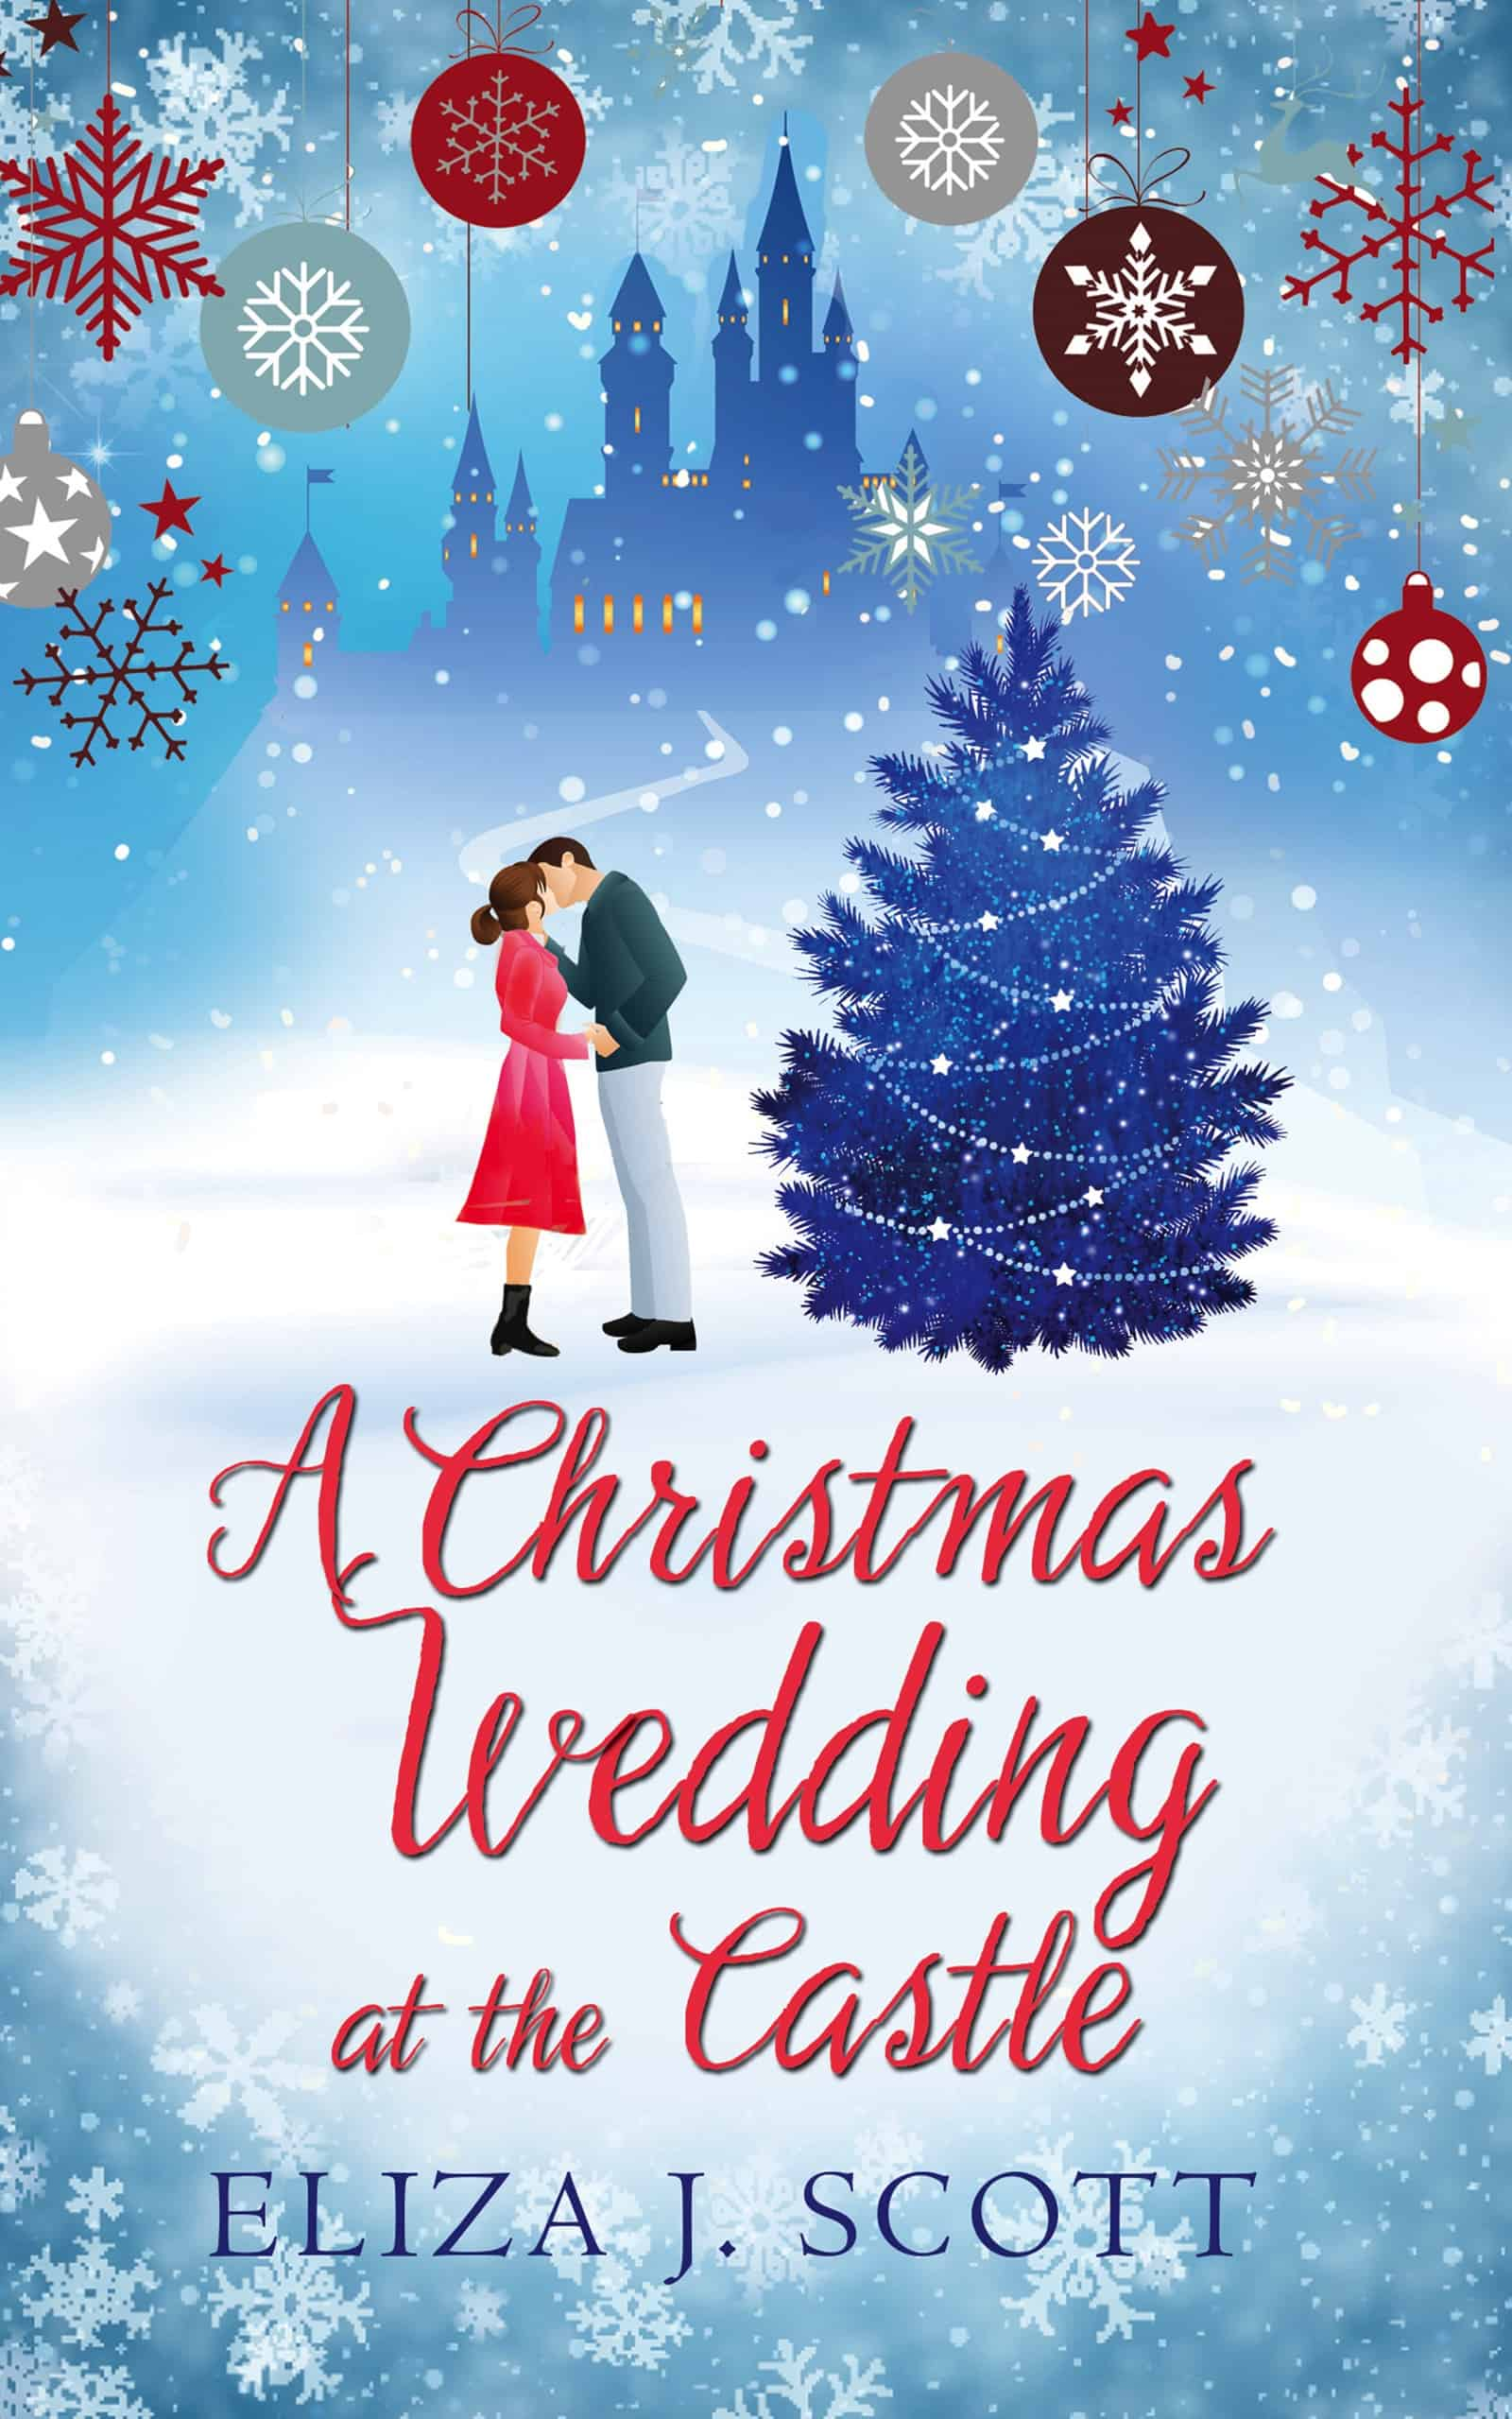 A Christmas Wedding at the Castle